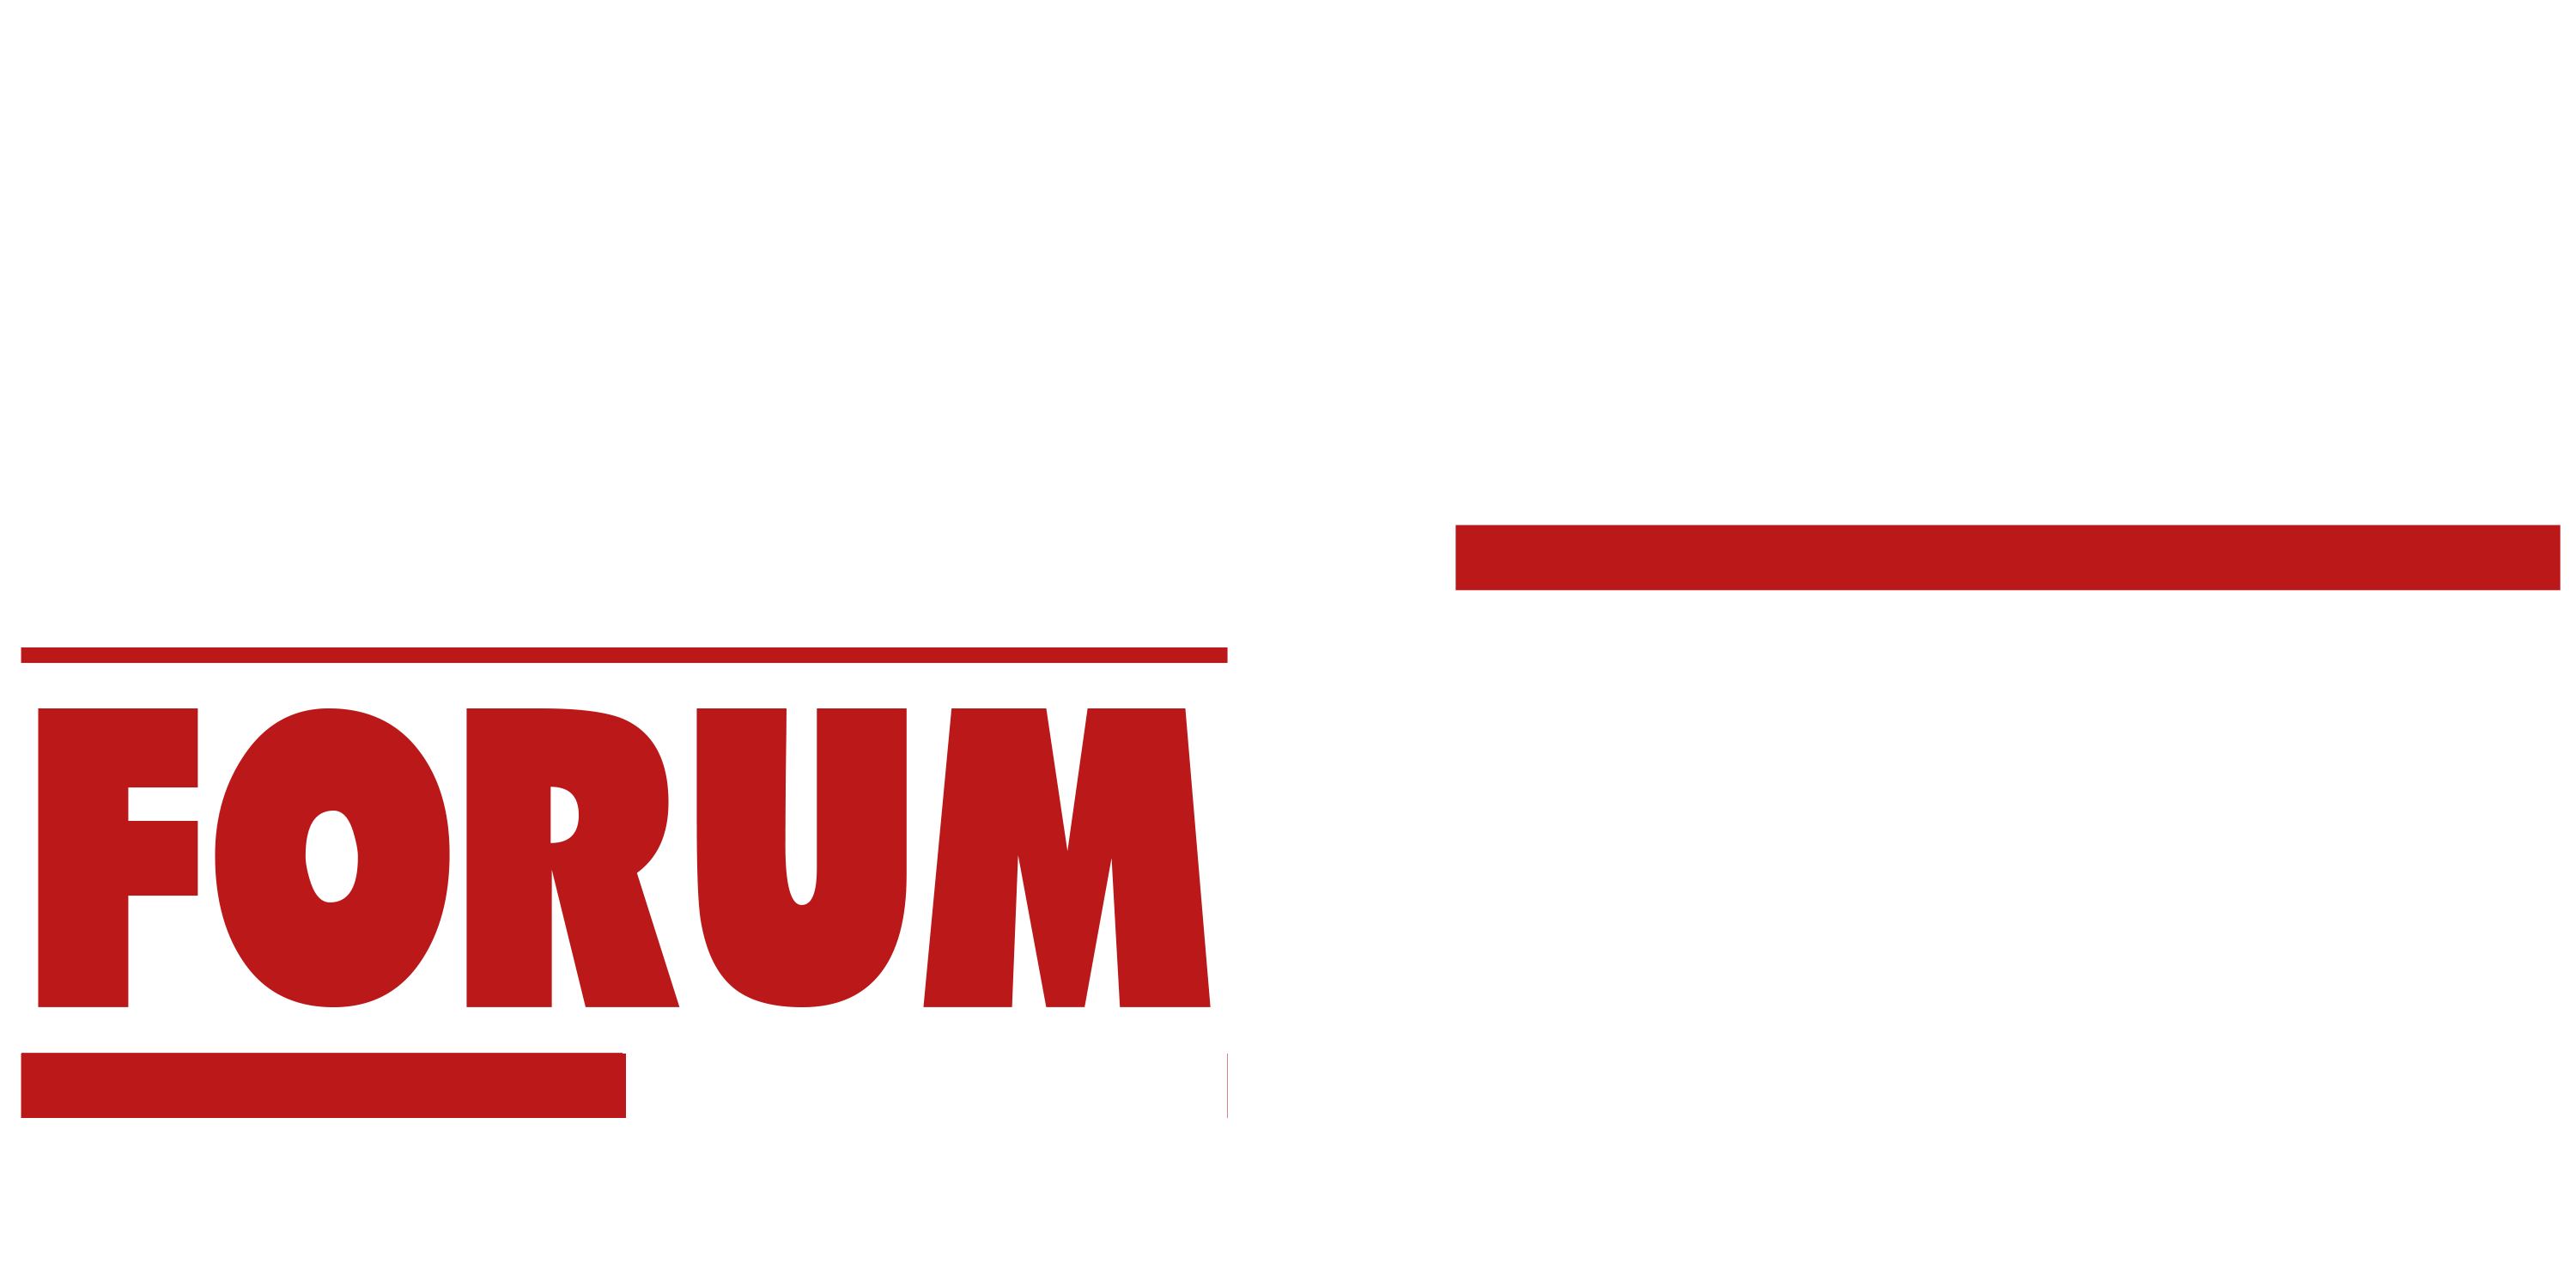 PEOPLE'S DAILY FORUM